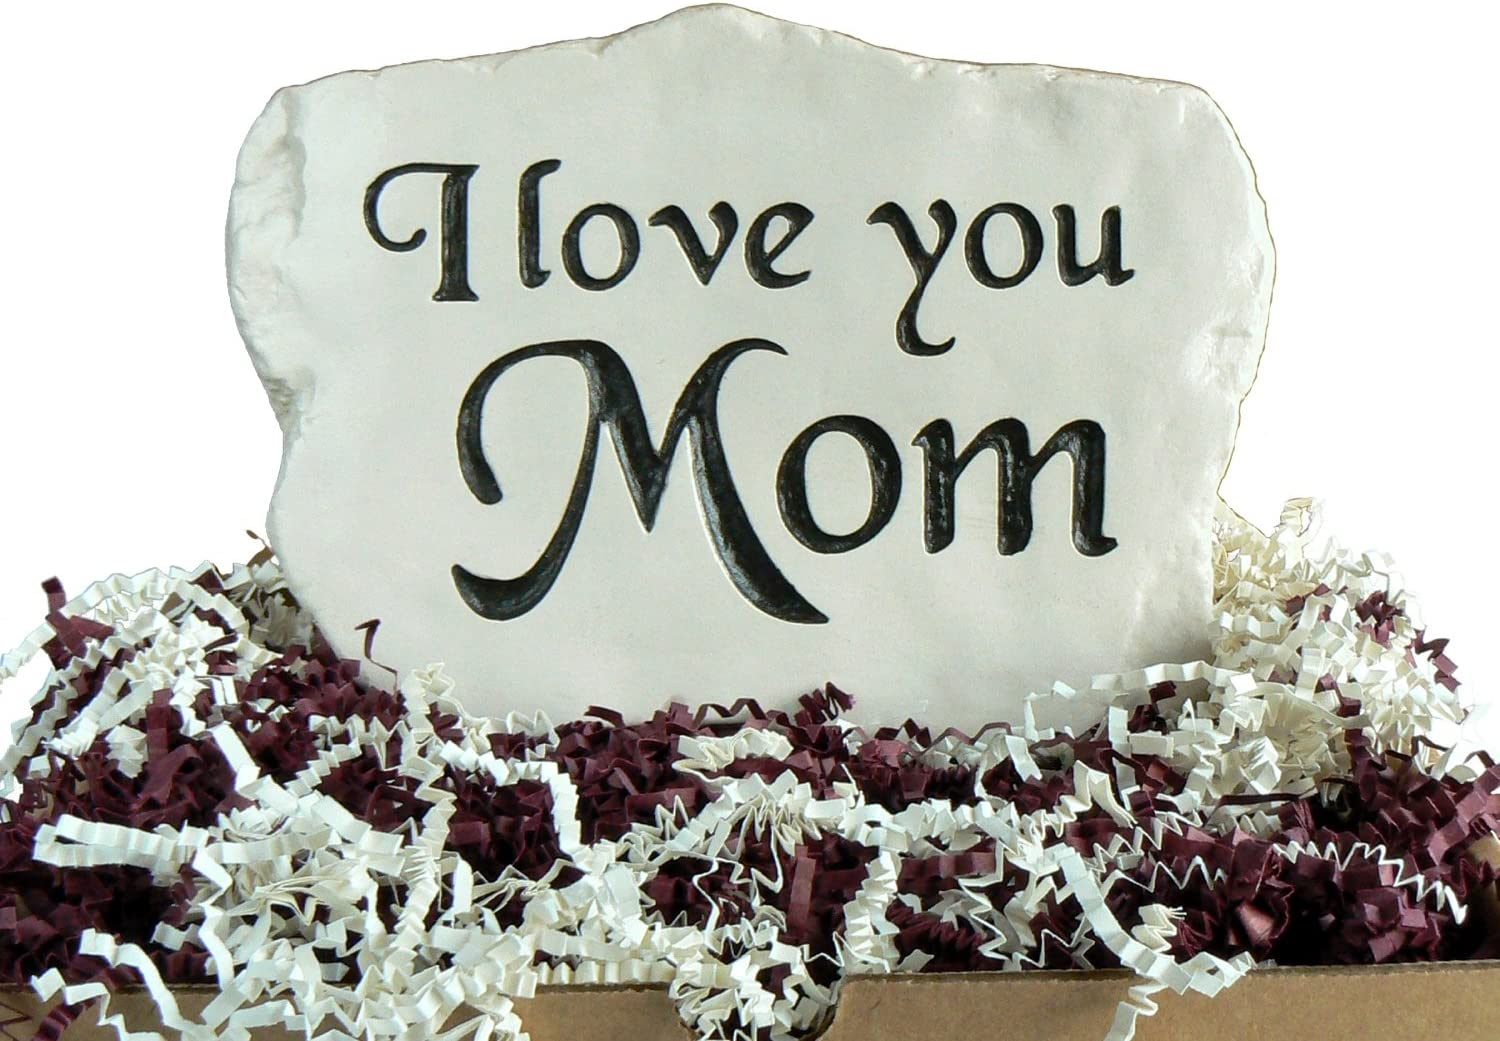 I Love You Mom - Engraved in a Heavy Little Rock